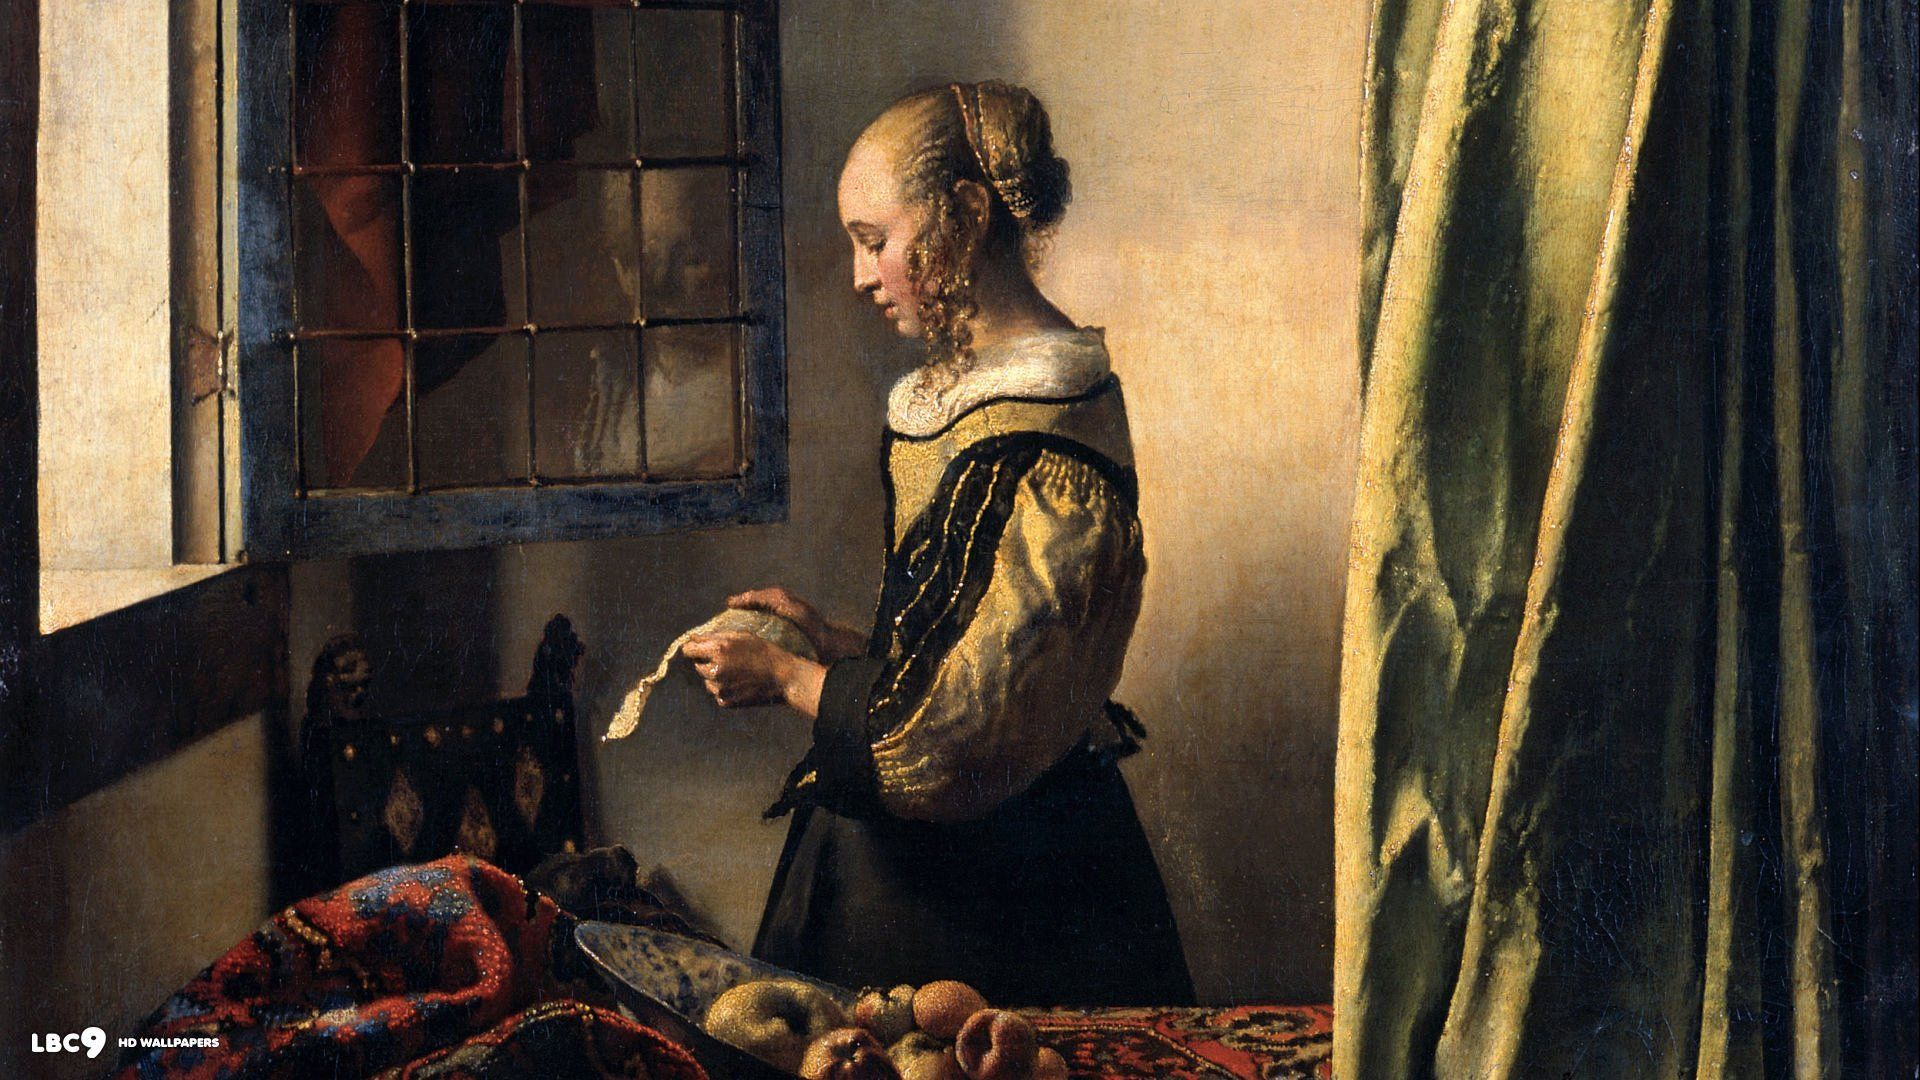 Johannes Vermeer Wallpapers - Top Free